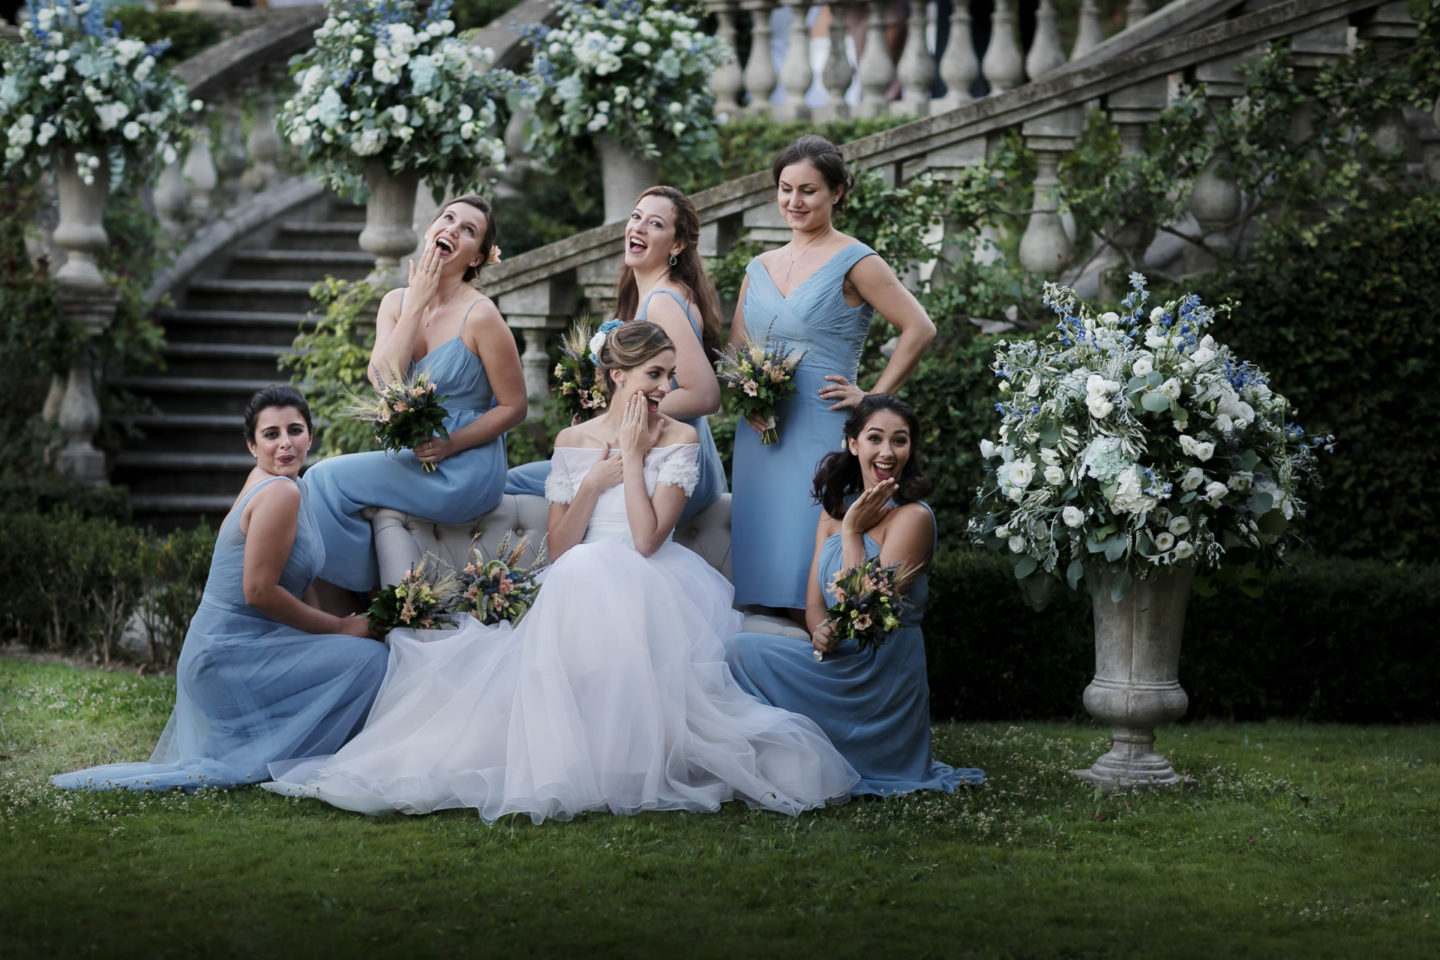 Bridal Party :: Amazing wedding day at Il Borro :: Luxury wedding photography - 36 :: Bridal Party